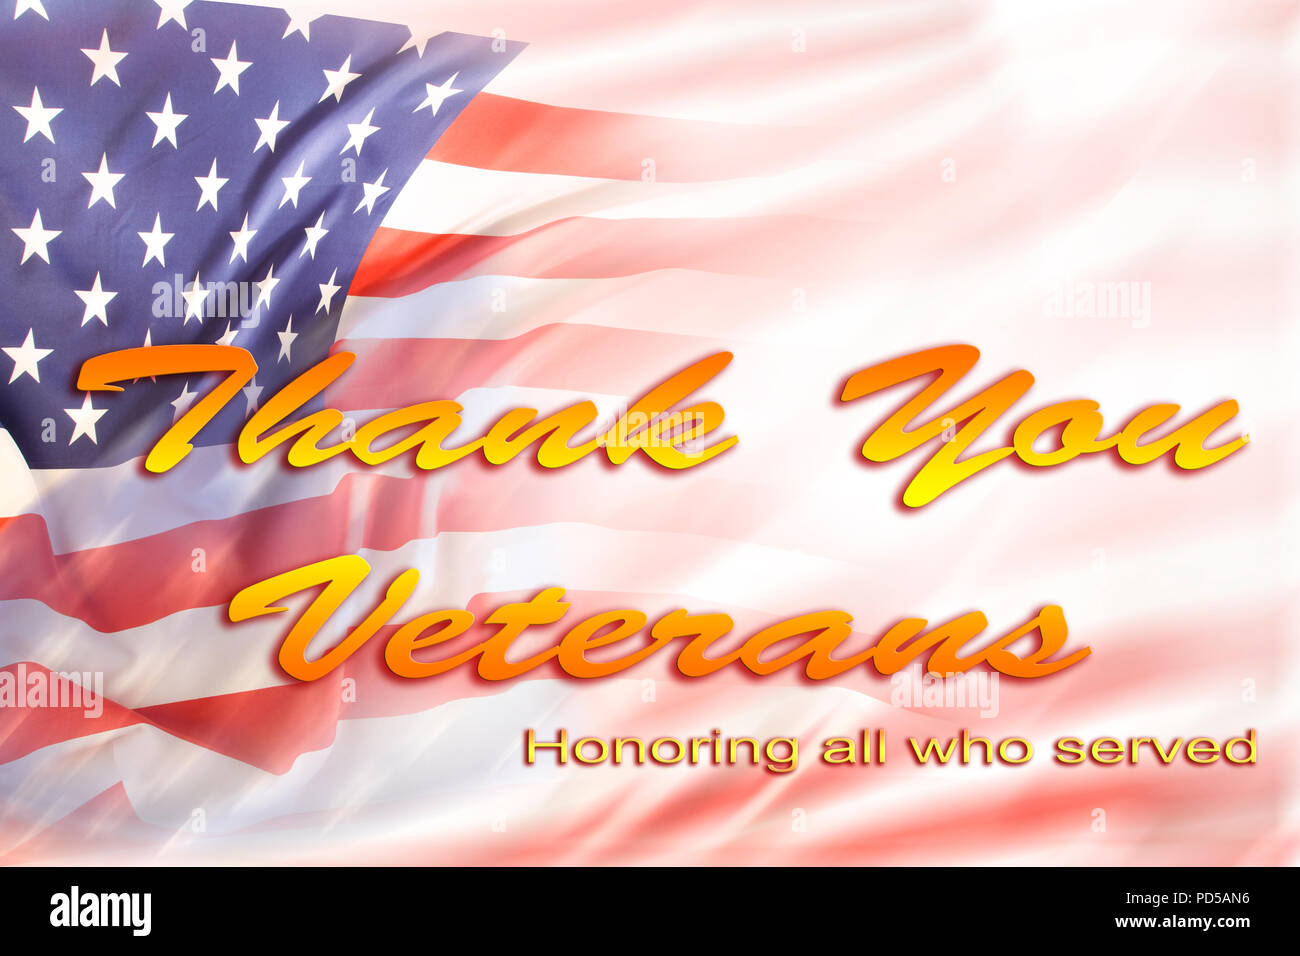 American Flag Veterans Day Text Stock Photo 214633138 Alamy